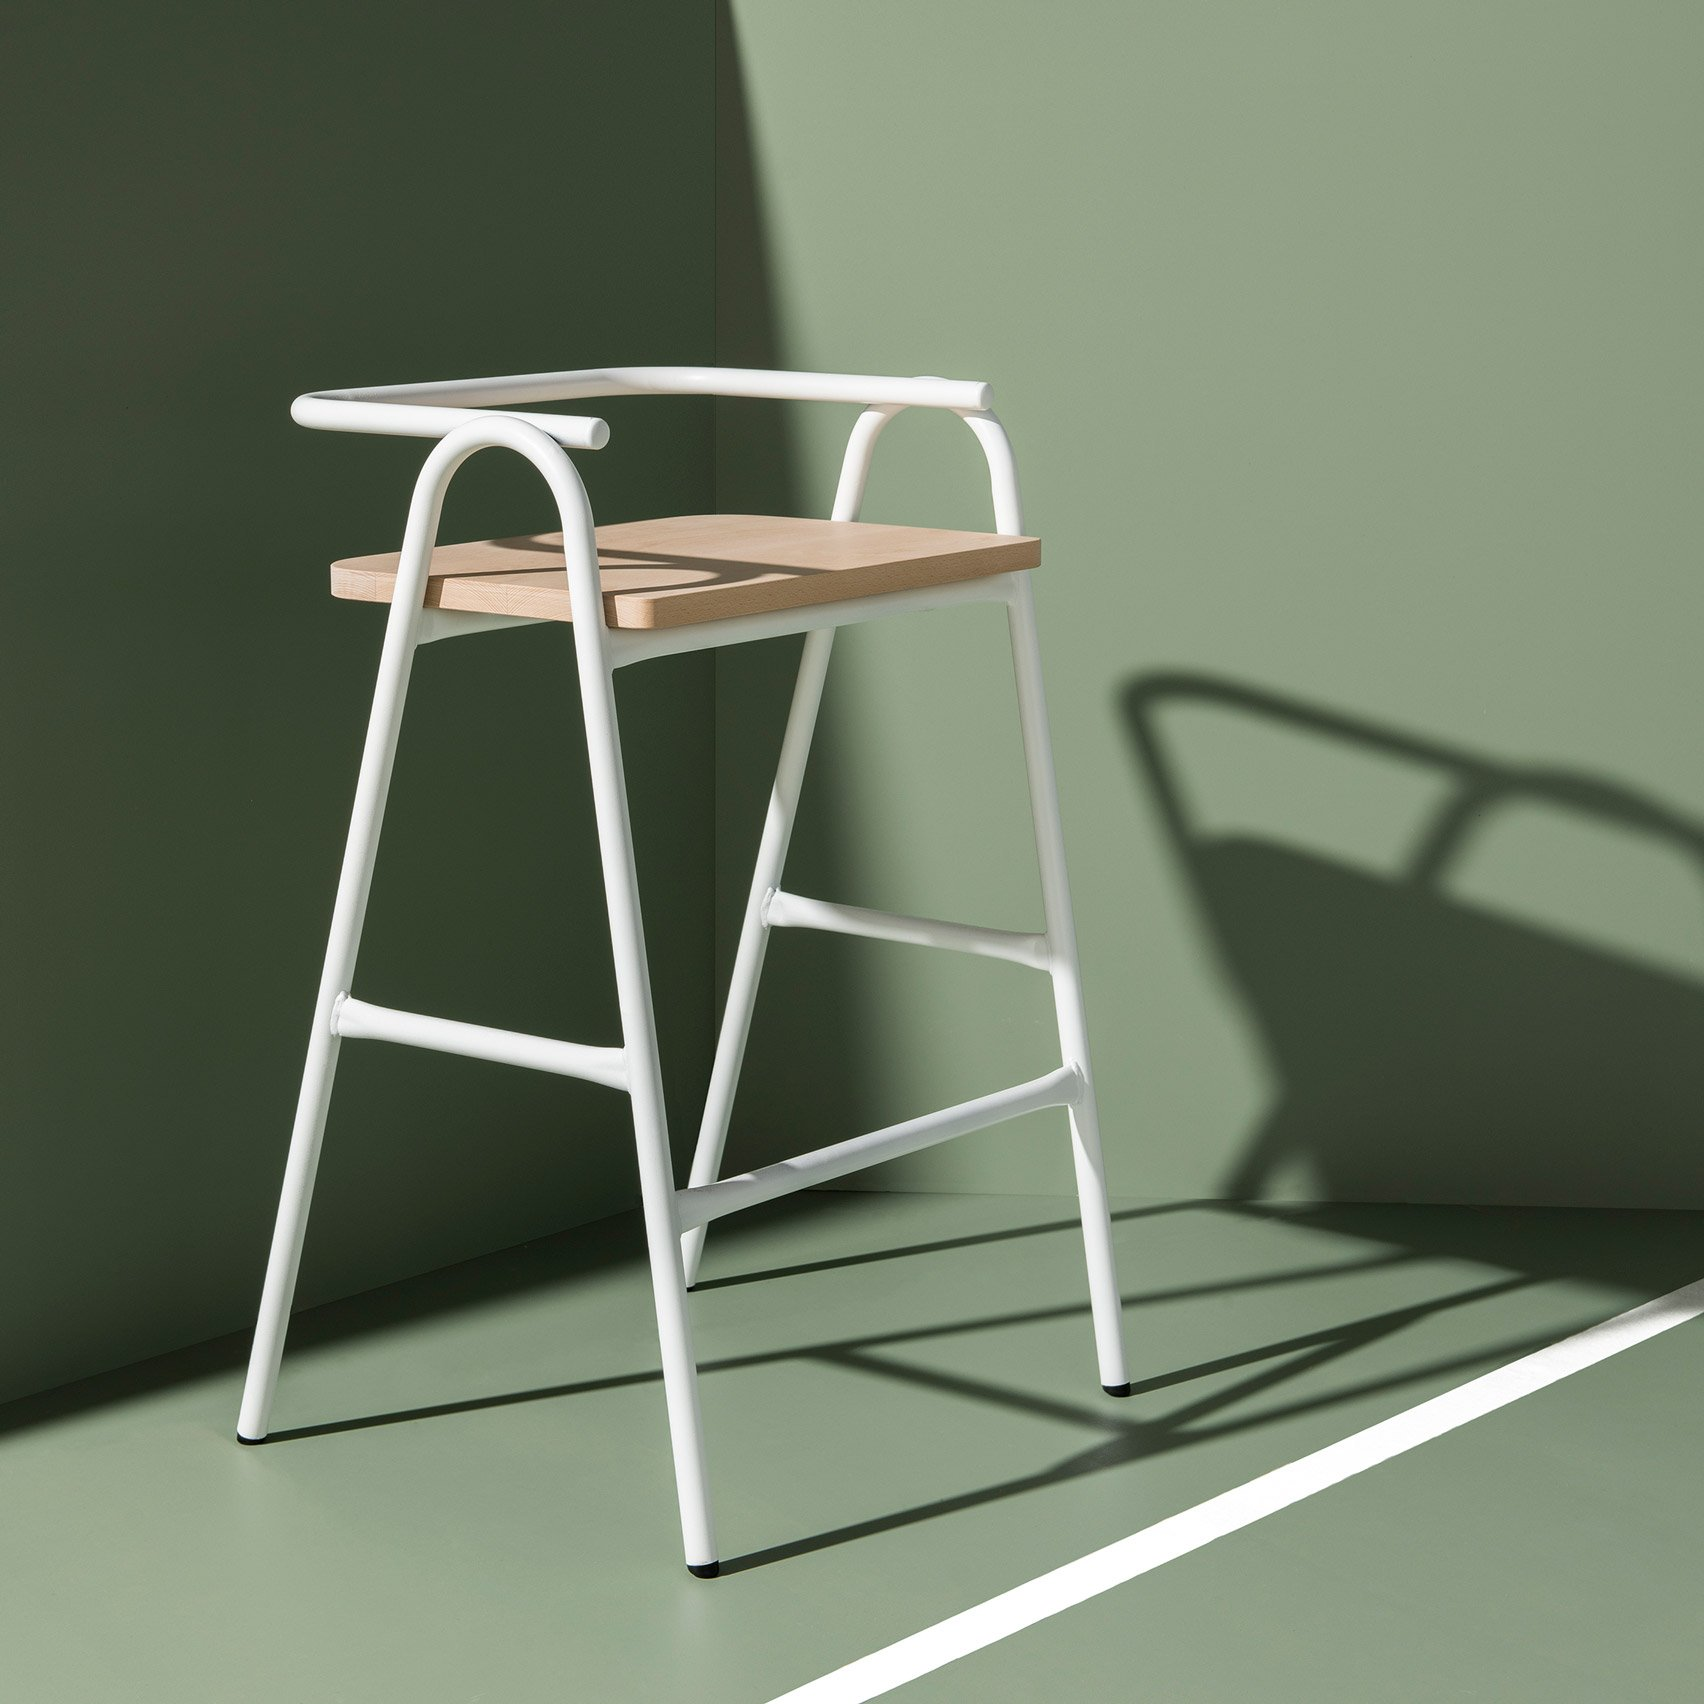 chair design | dezeen